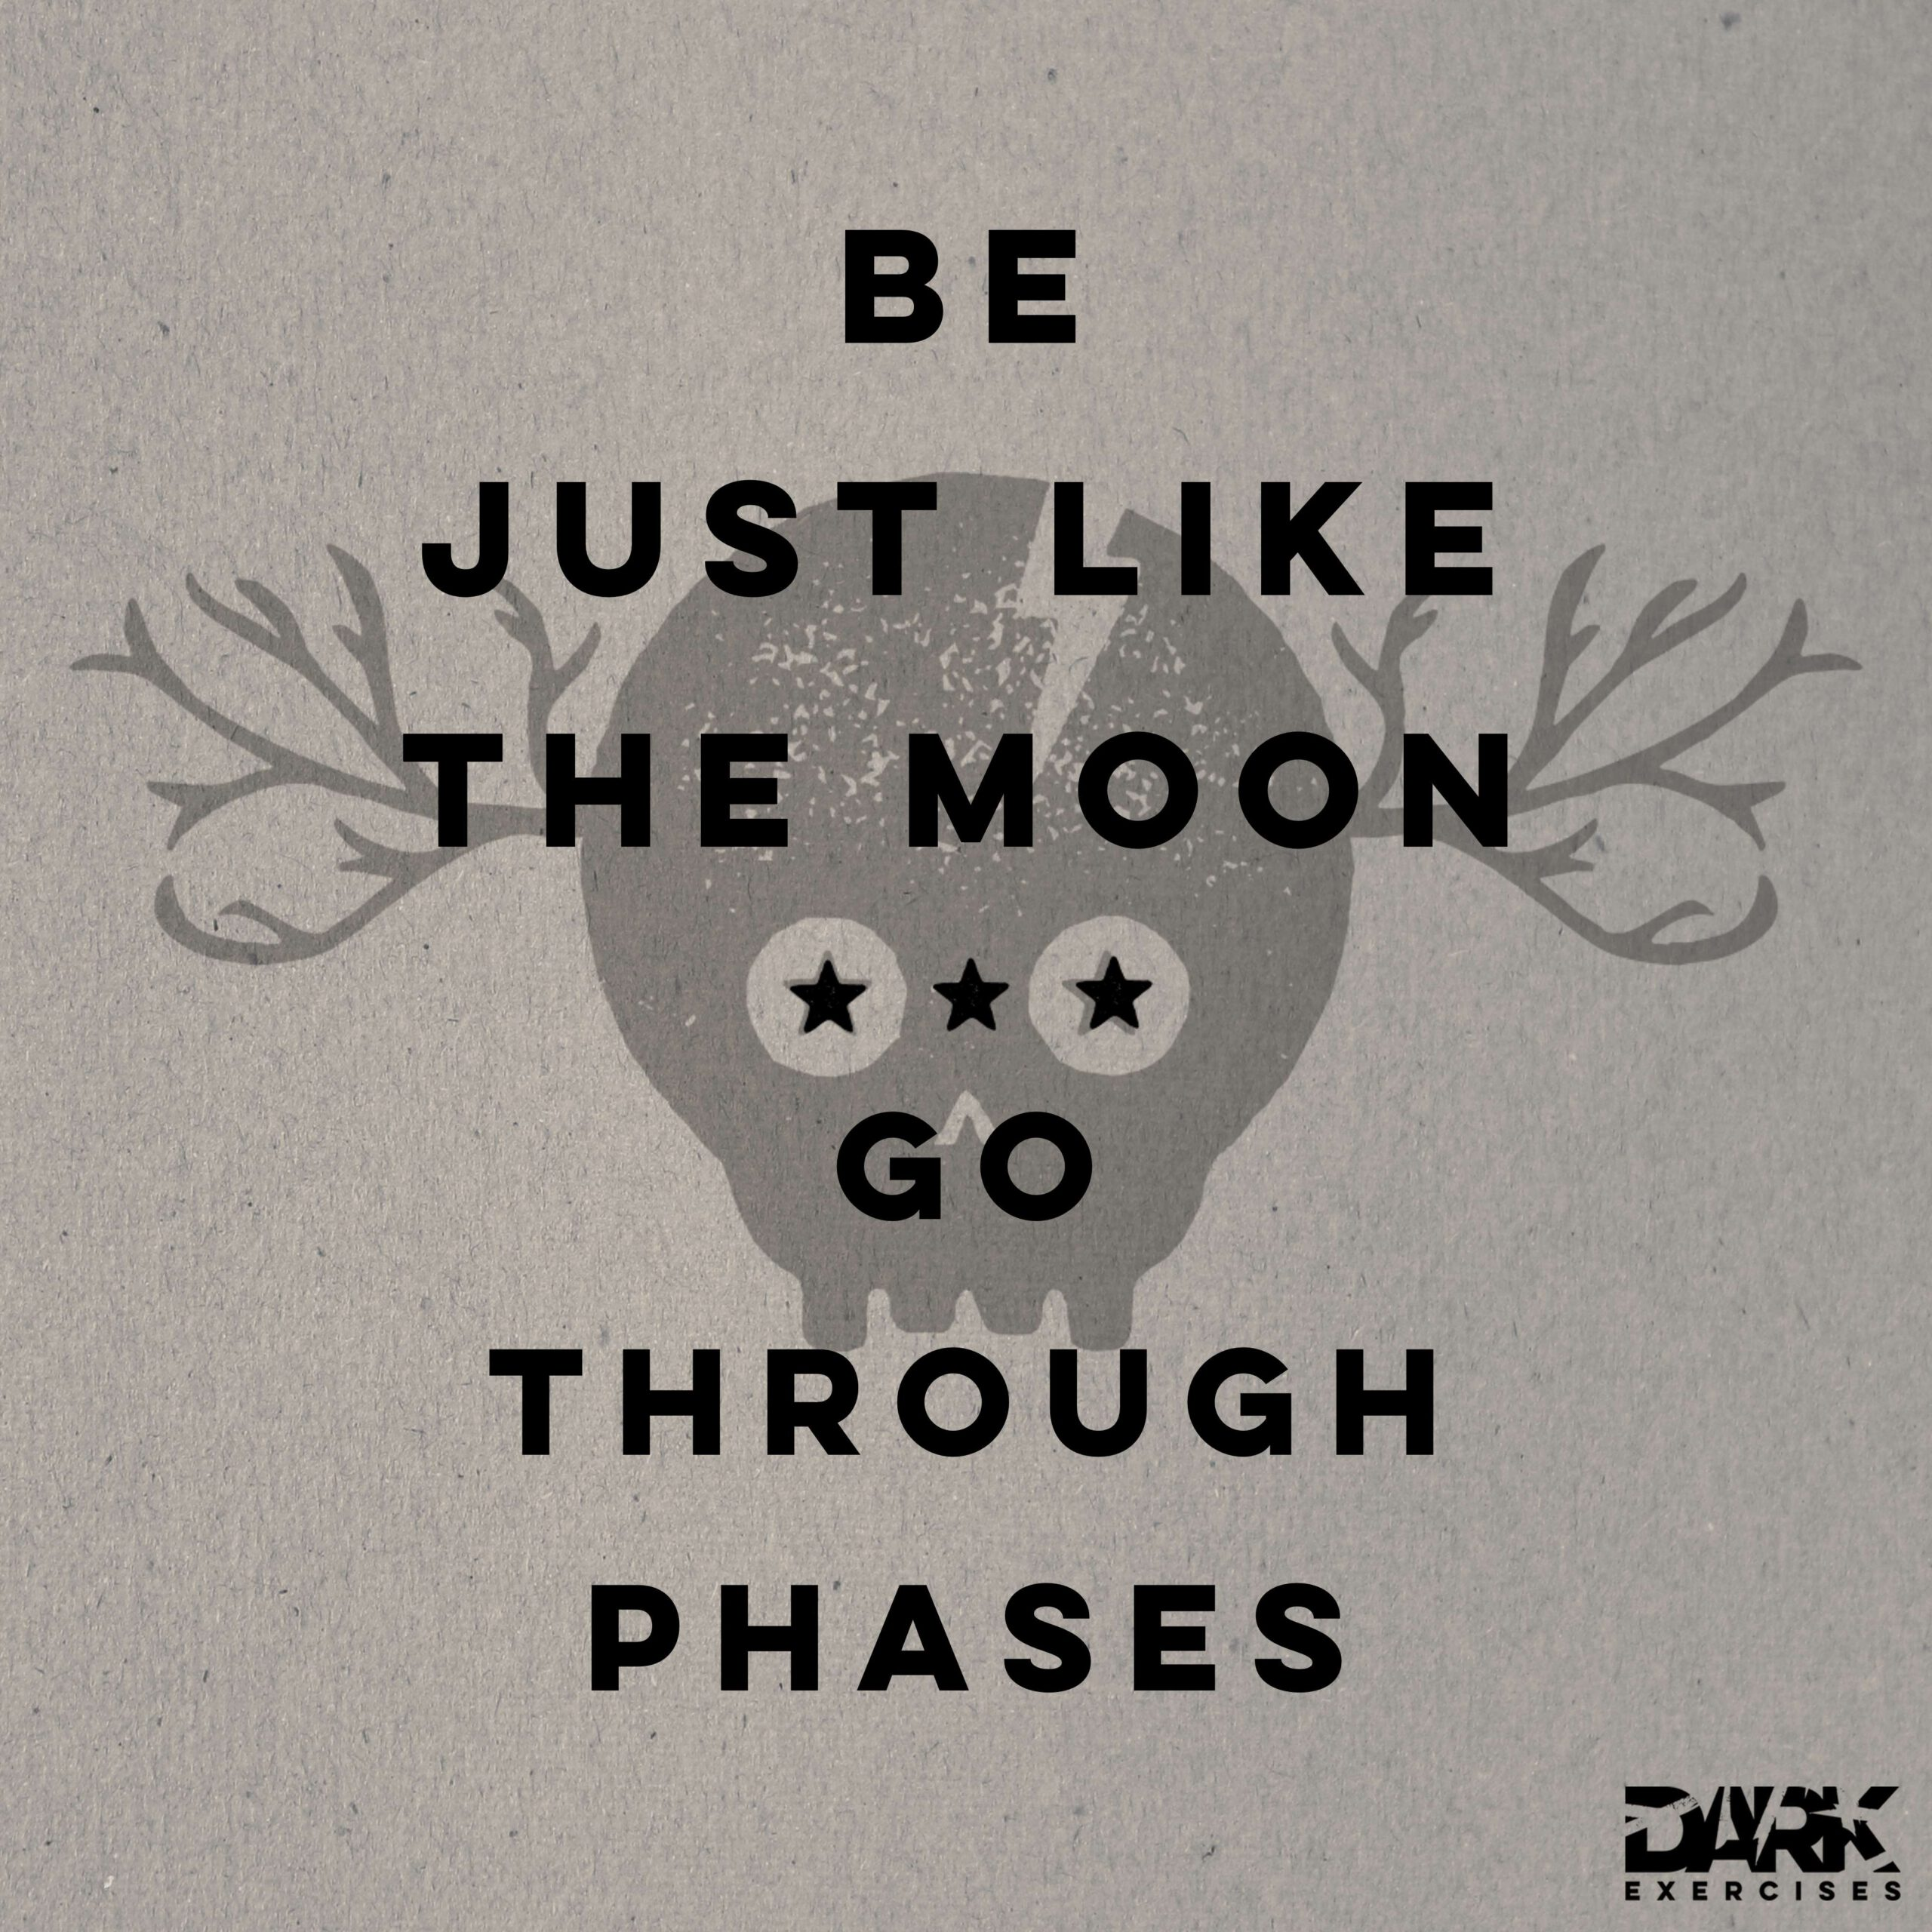 Quote - Be just like the moon, go through phases